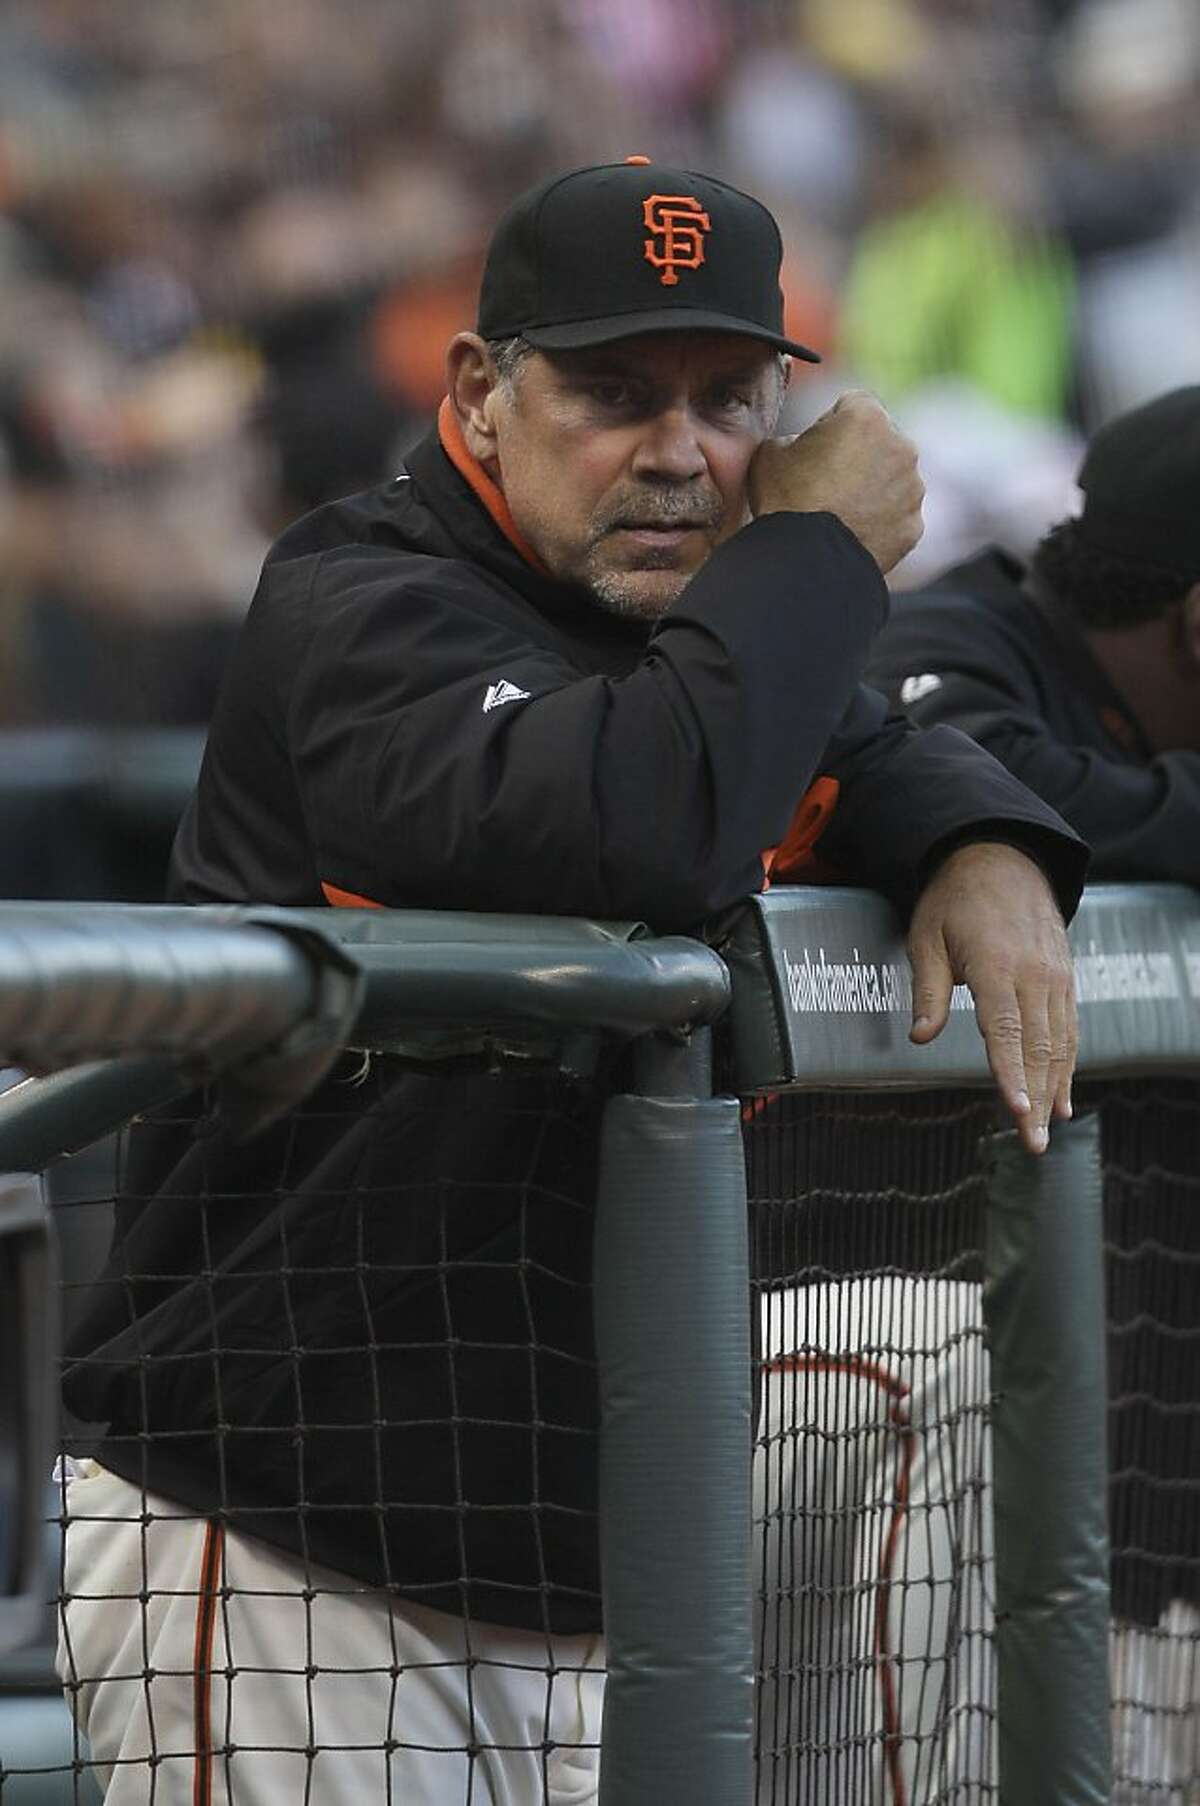 San Francisco Giants manager Bruce Bochy (15) against the Los Angeles Dodgers during a baseball game in San Francisco, Friday, July 27, 2012. (AP Photo/Jeff Chiu)